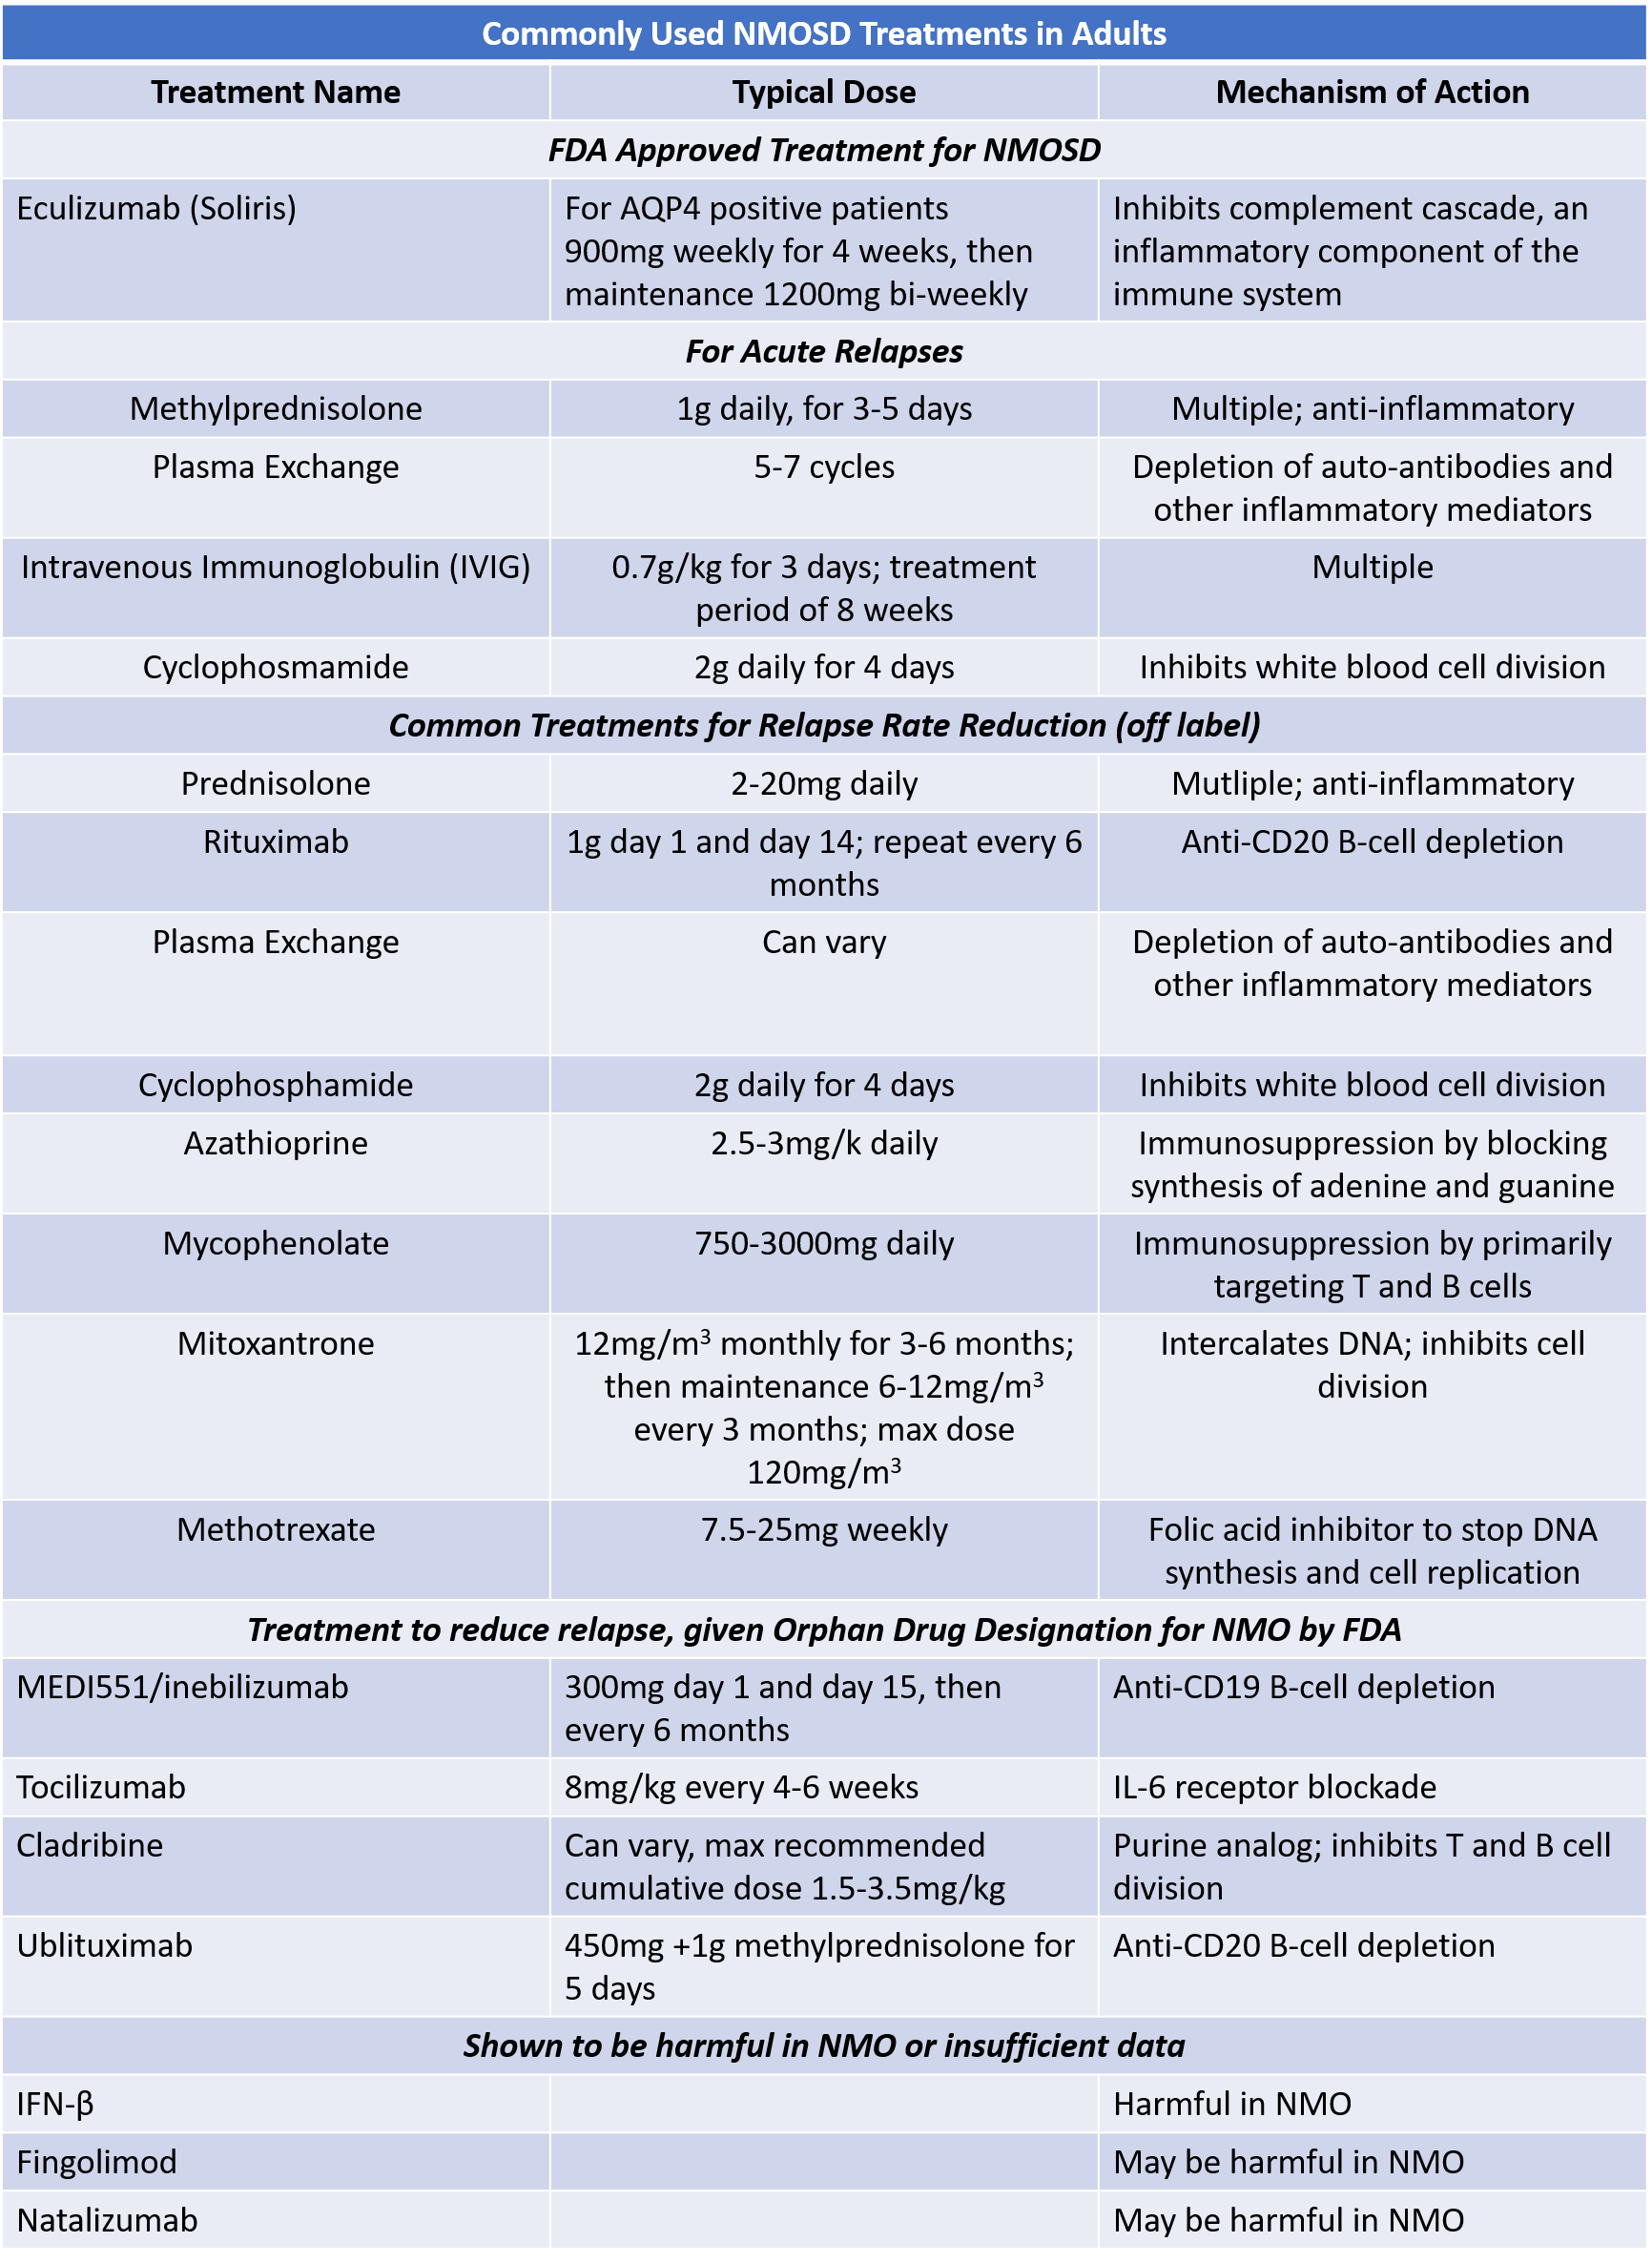 Table of Commonly Used NMO Treatements in Adults